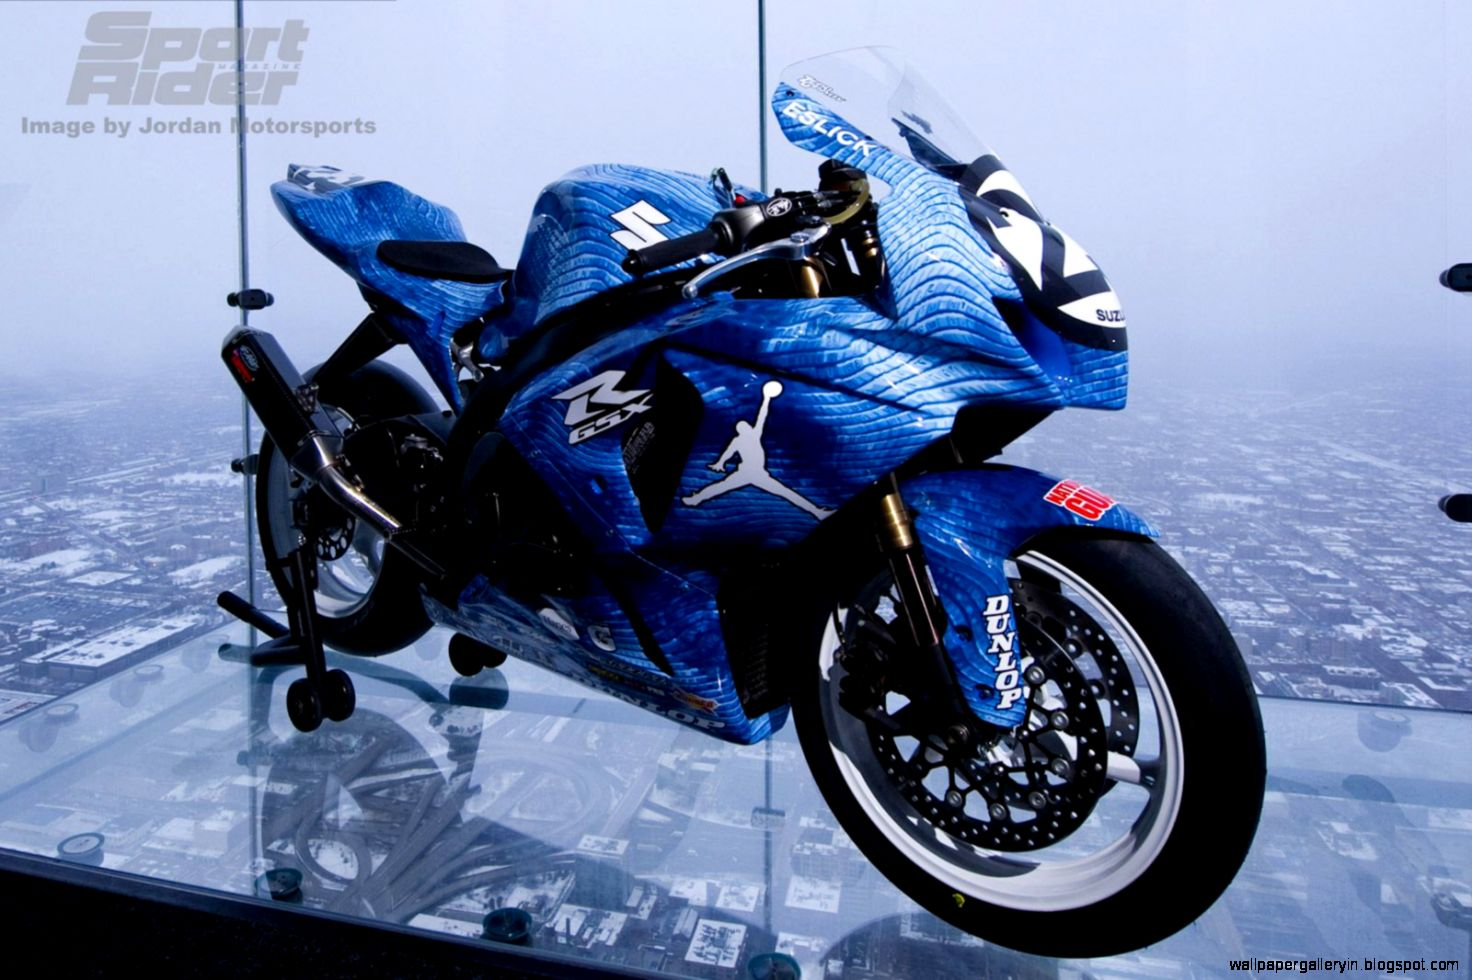 Michael Jordan Motorsports Superbike HD 2576 Wallpaper